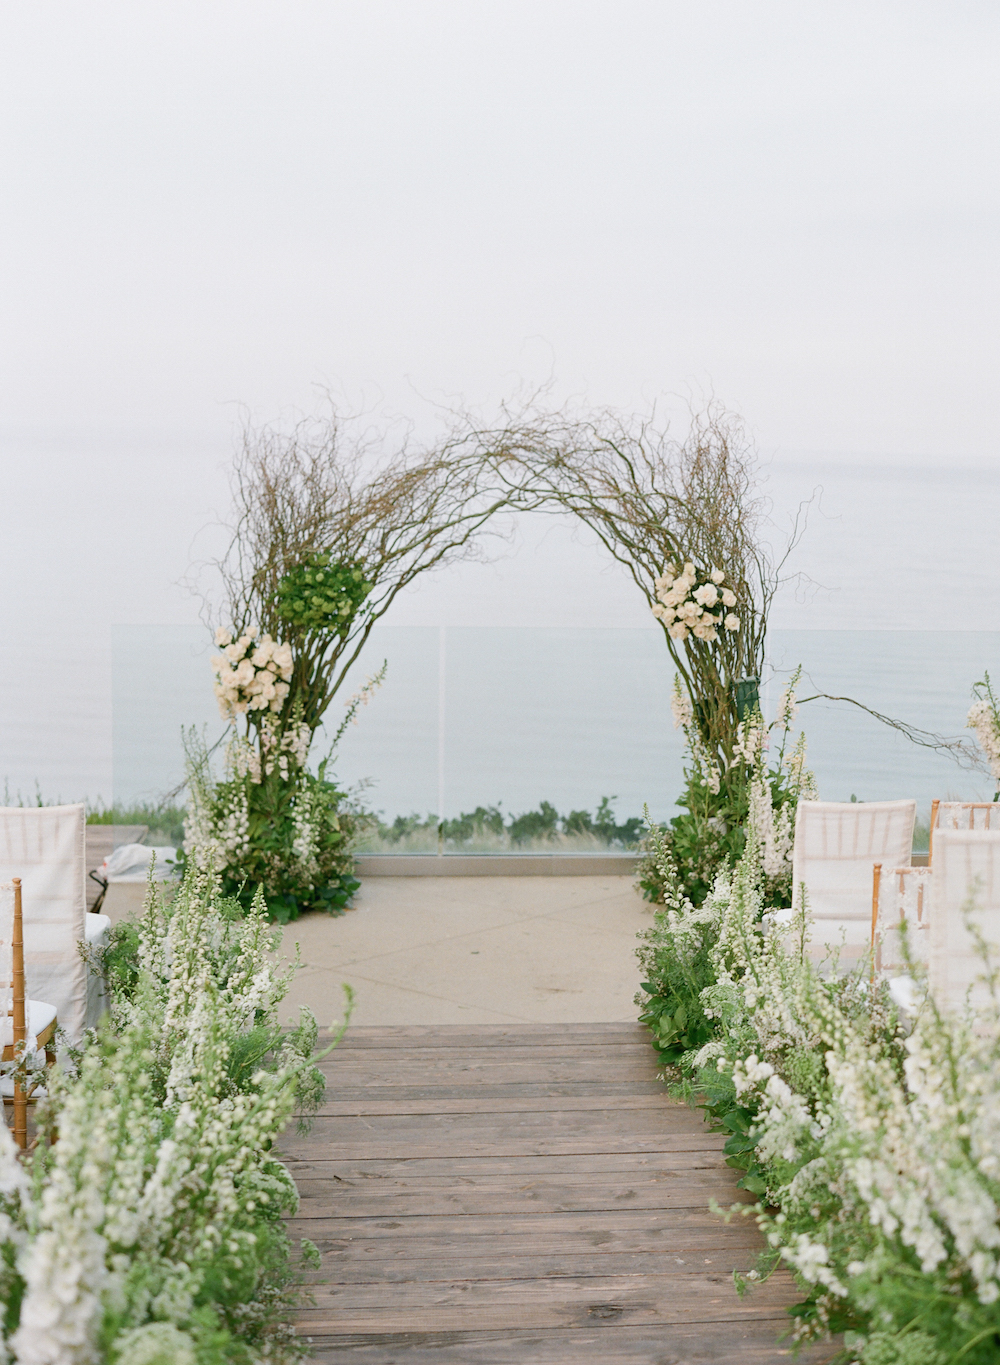 ocean view wedding ceremony with arch made from branches